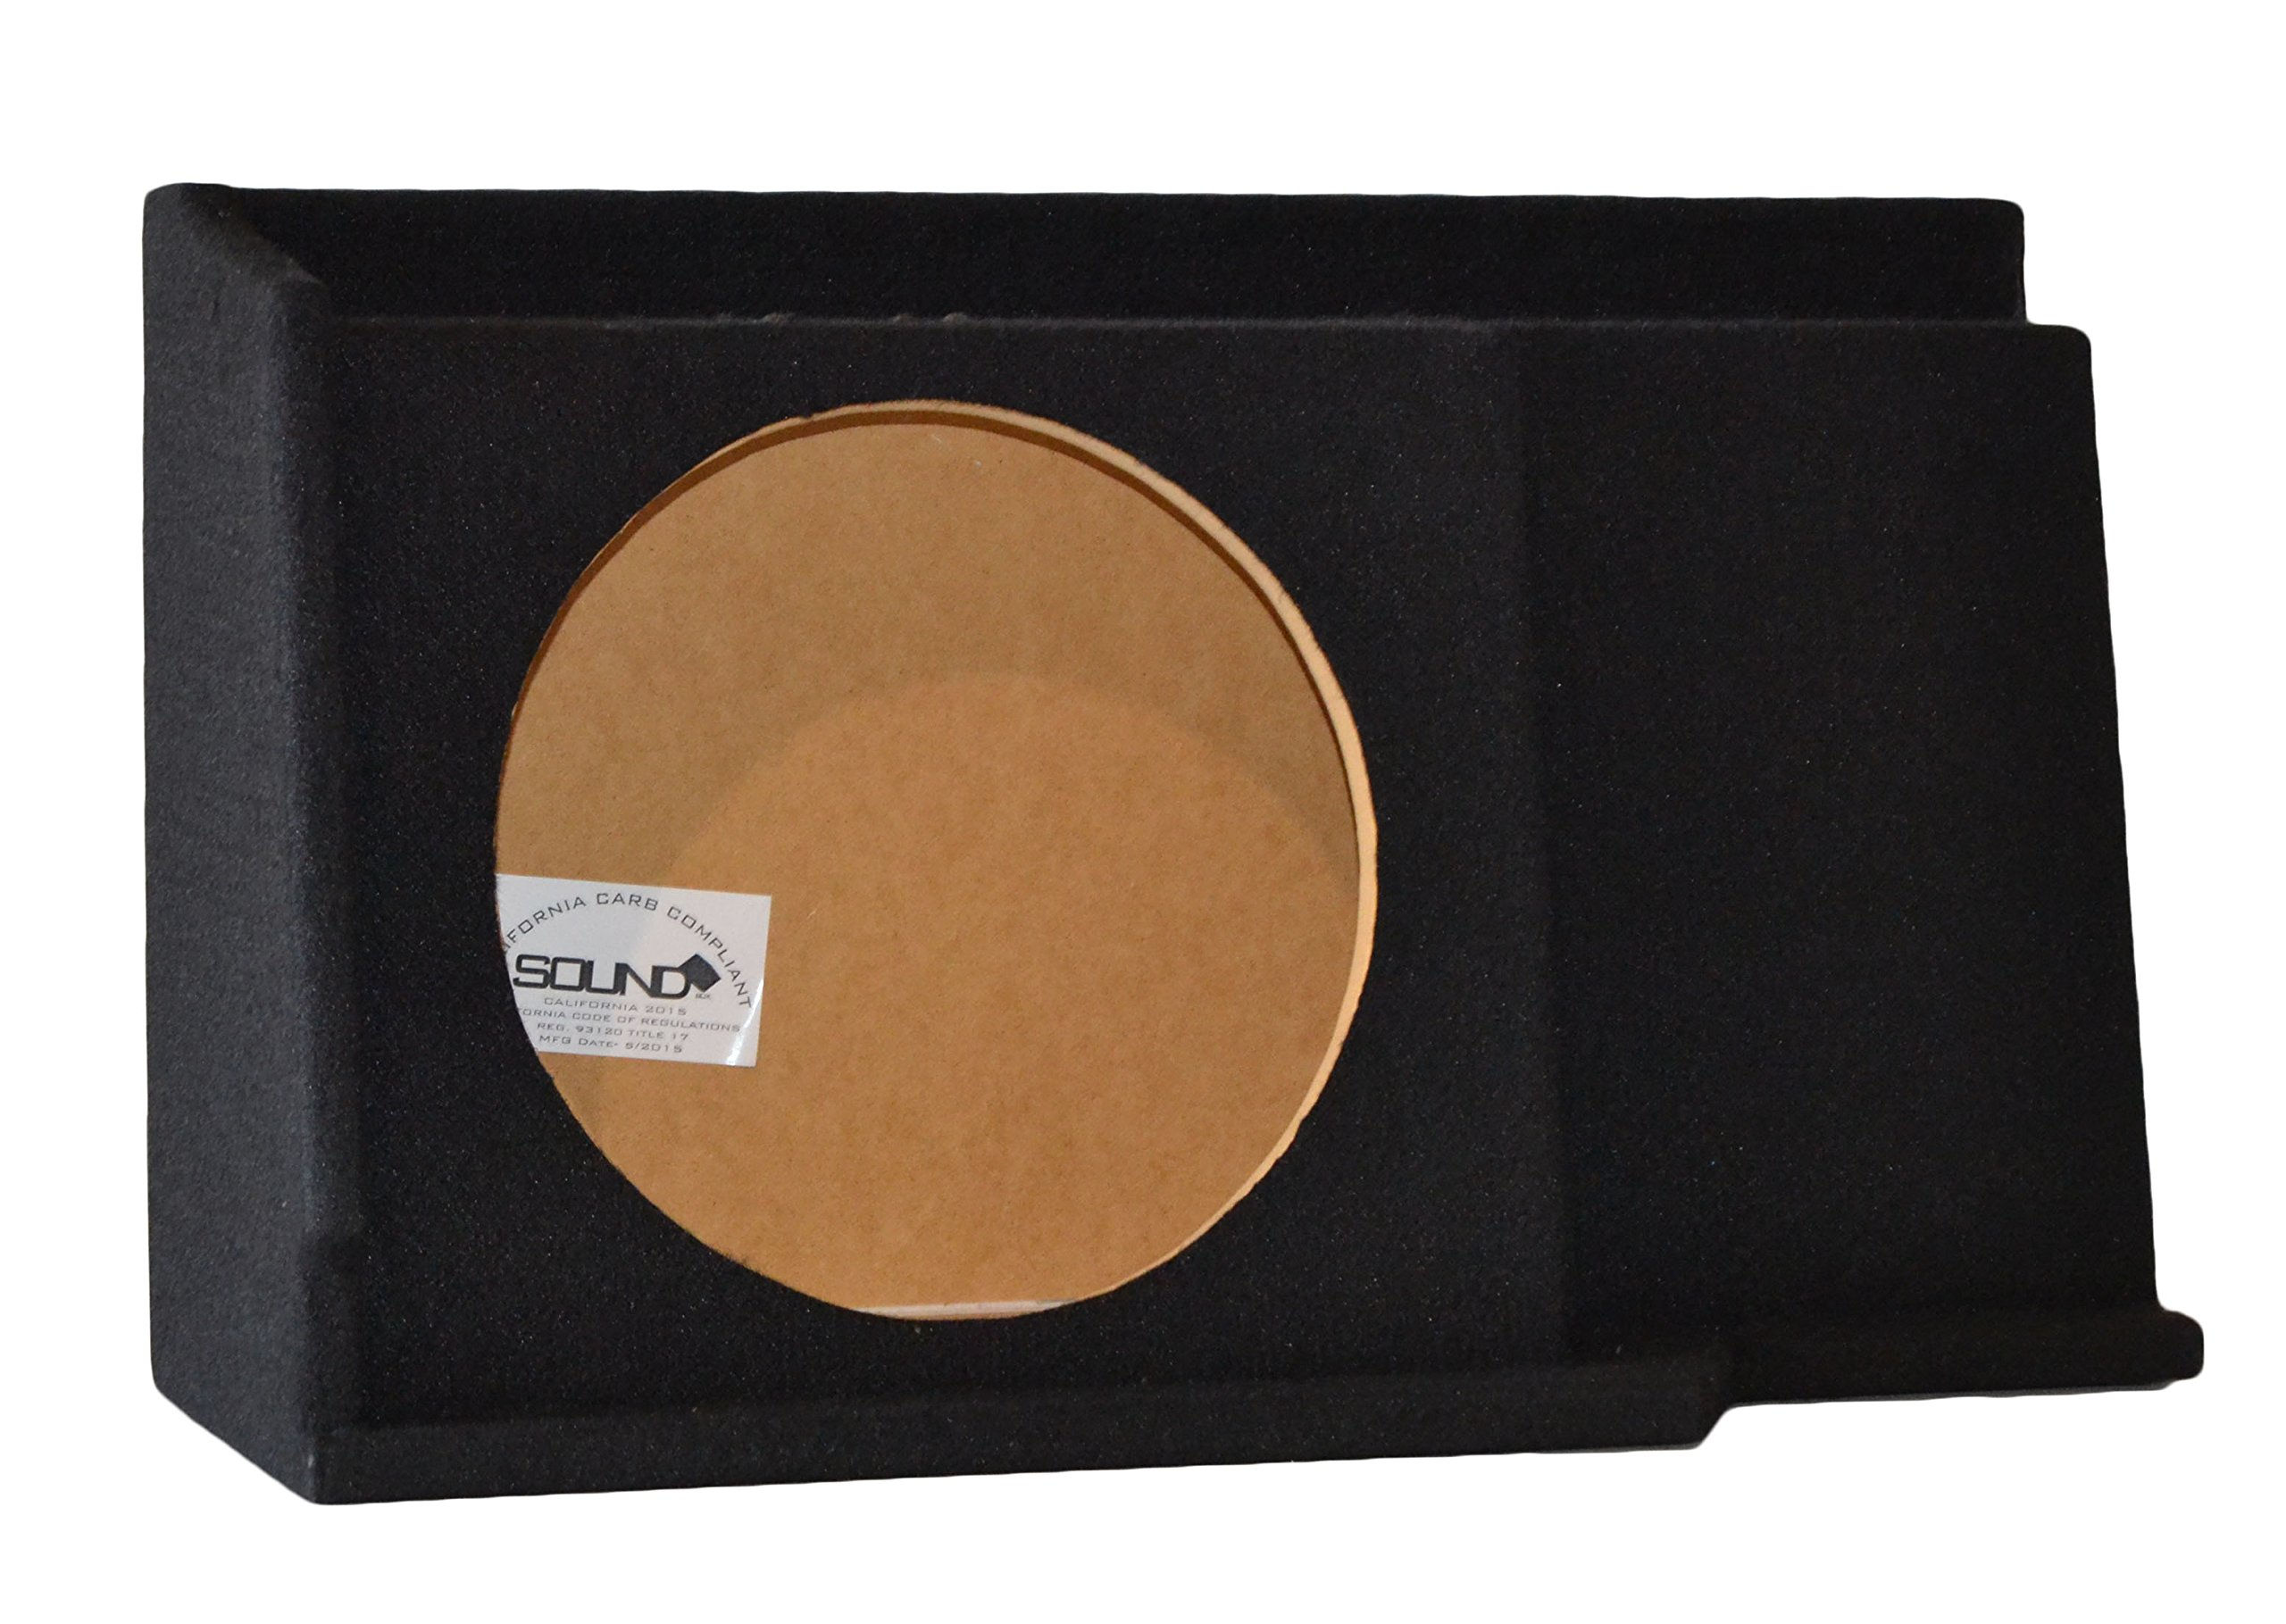 Chevy Silverado / GMC Sierra Ext Extended Cab Single 12'' Subwoofer Enclosure Sub Box 1999-2006, CARB COMPLIANT MDF! DONT BUY CHEAPER NON COMPLIANT MDF!